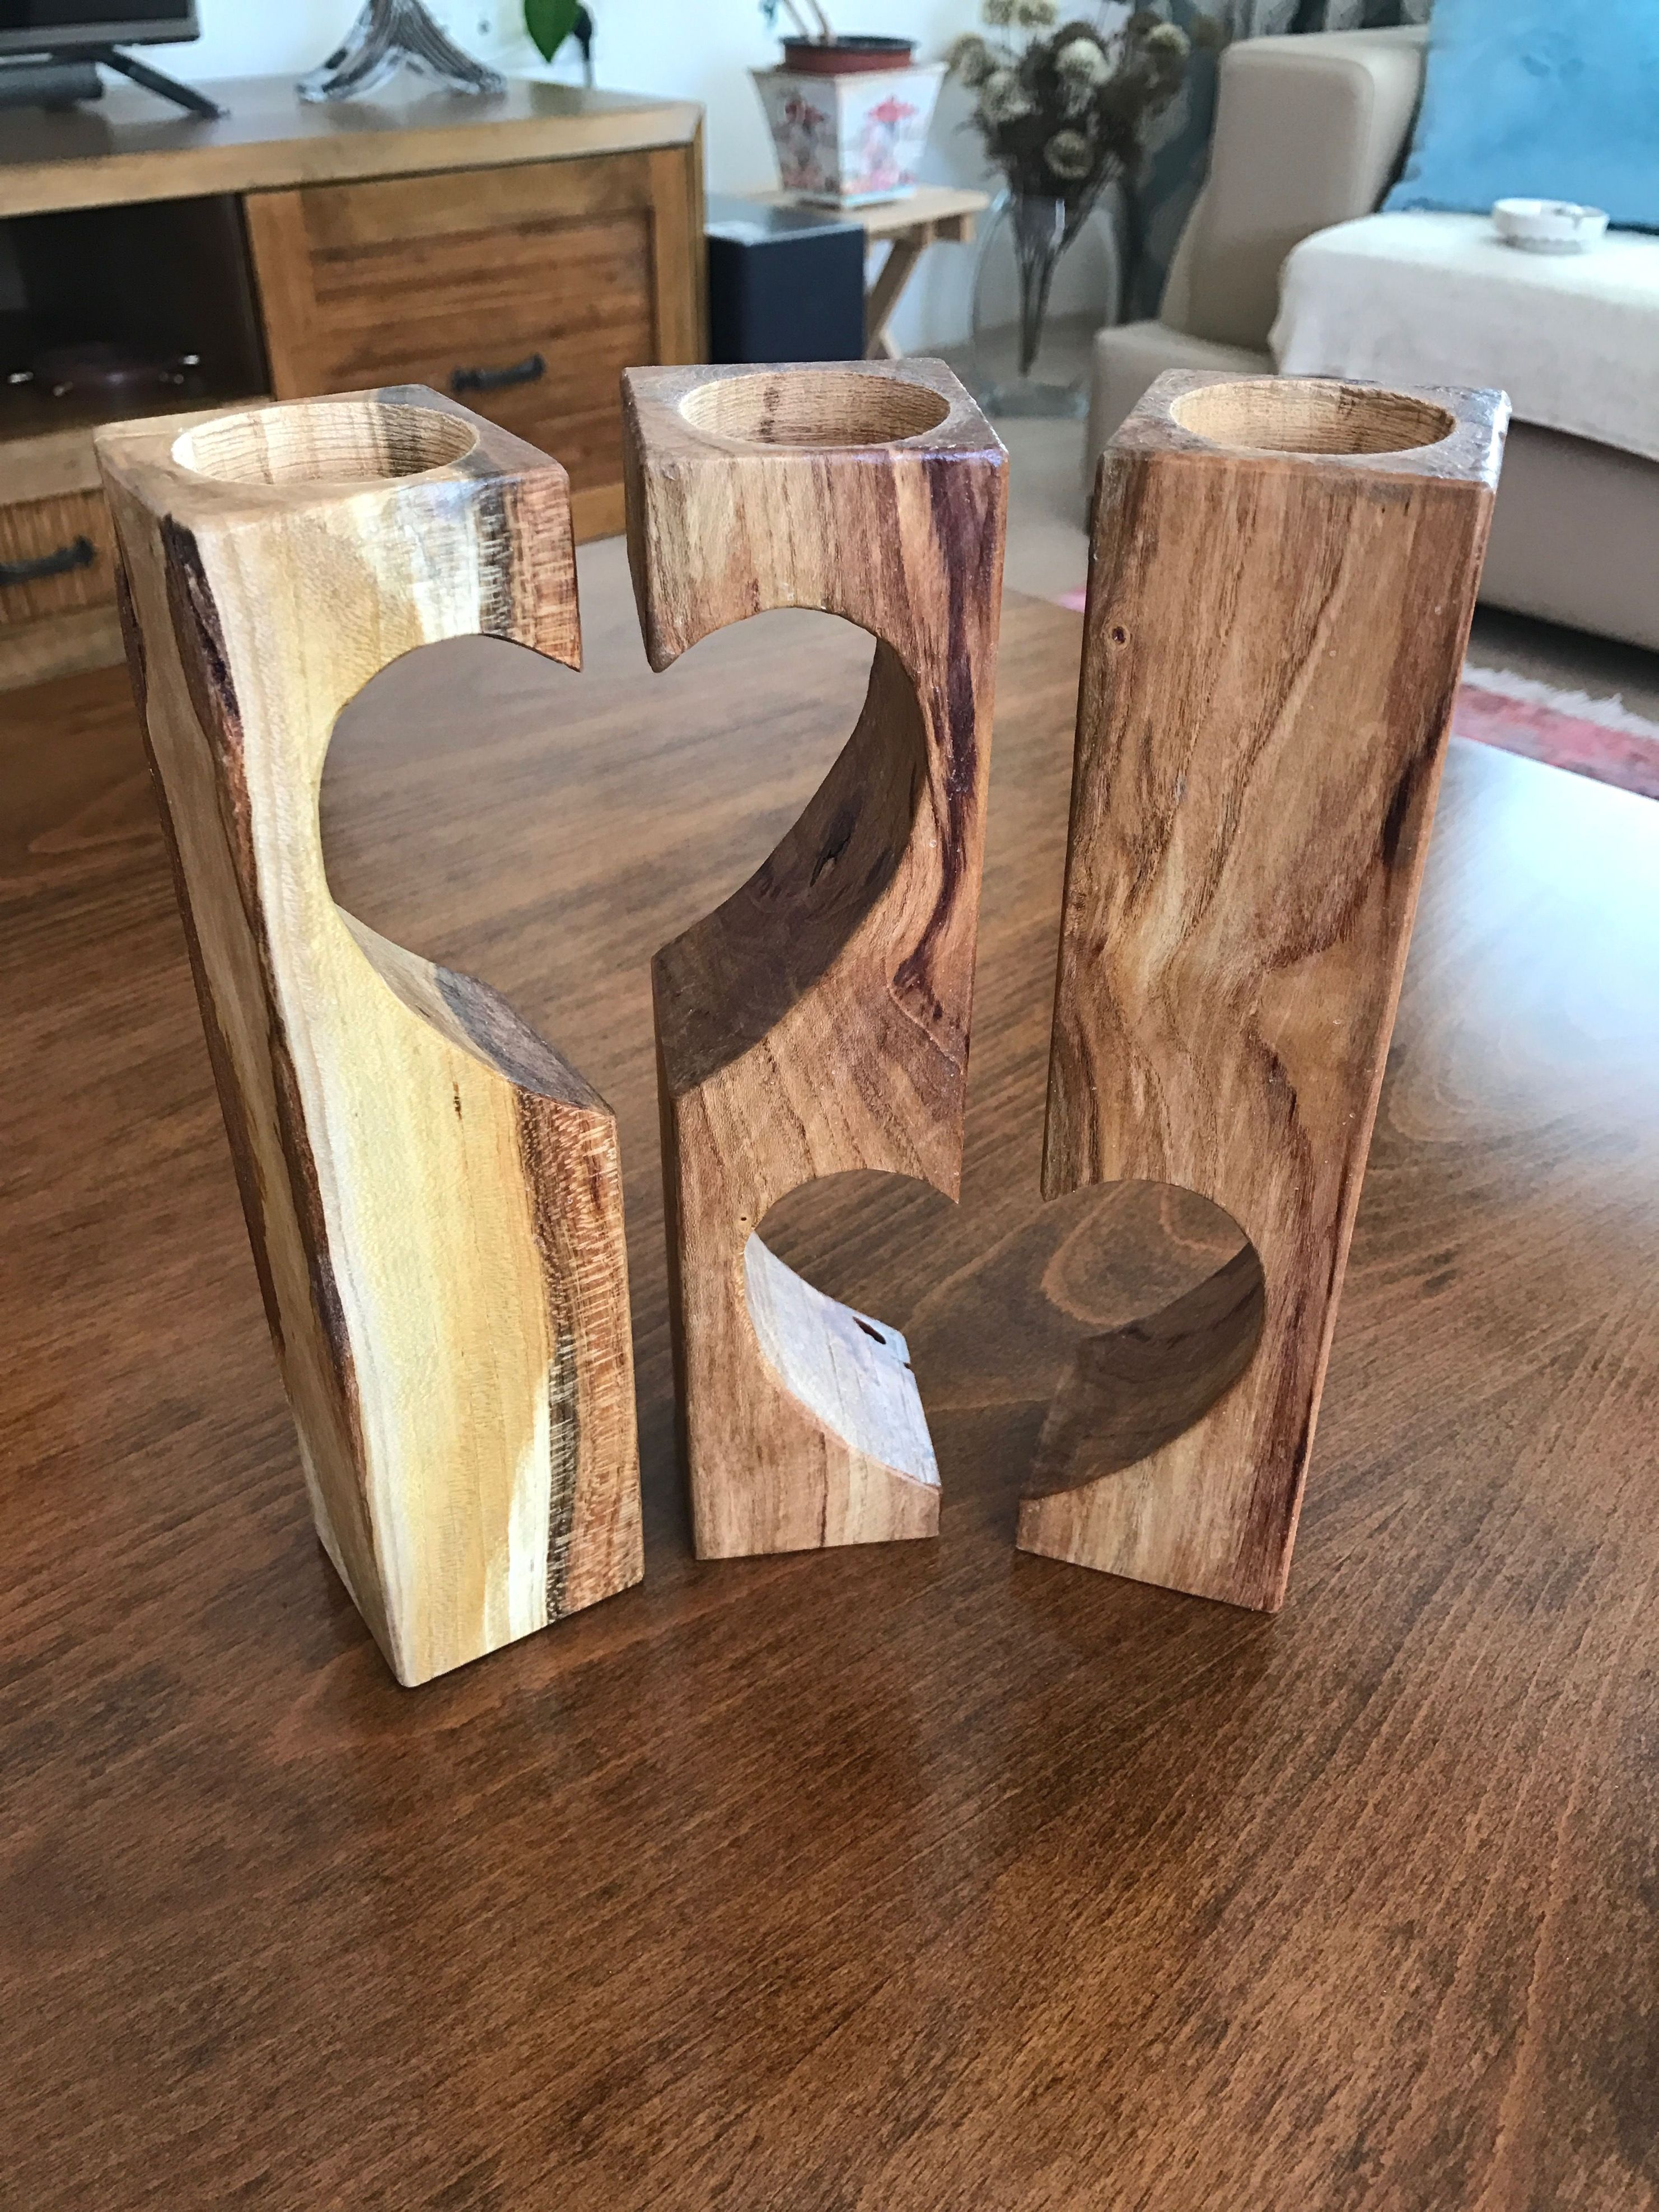 Easy To Make Wood Projects Woodworkcrafts Living Area